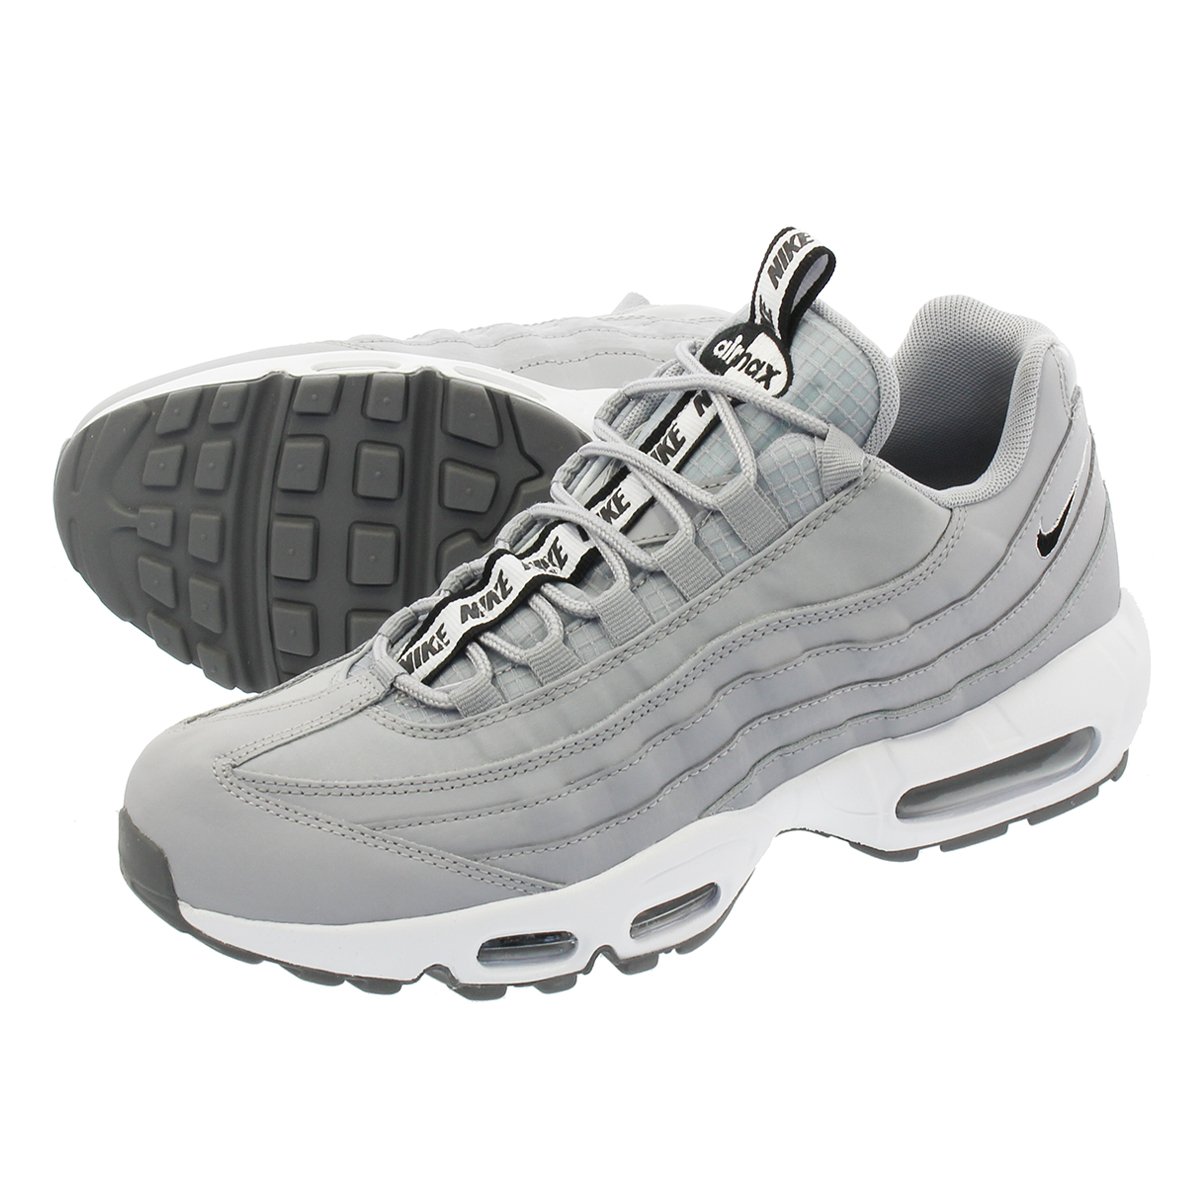 91e8f77a1d LOWTEX PLUS: NIKE AIR MAX 95 SE Kie Ney AMAX 95 SE GREY/WHITE/BLACK  aq4129-001 | Rakuten Global Market